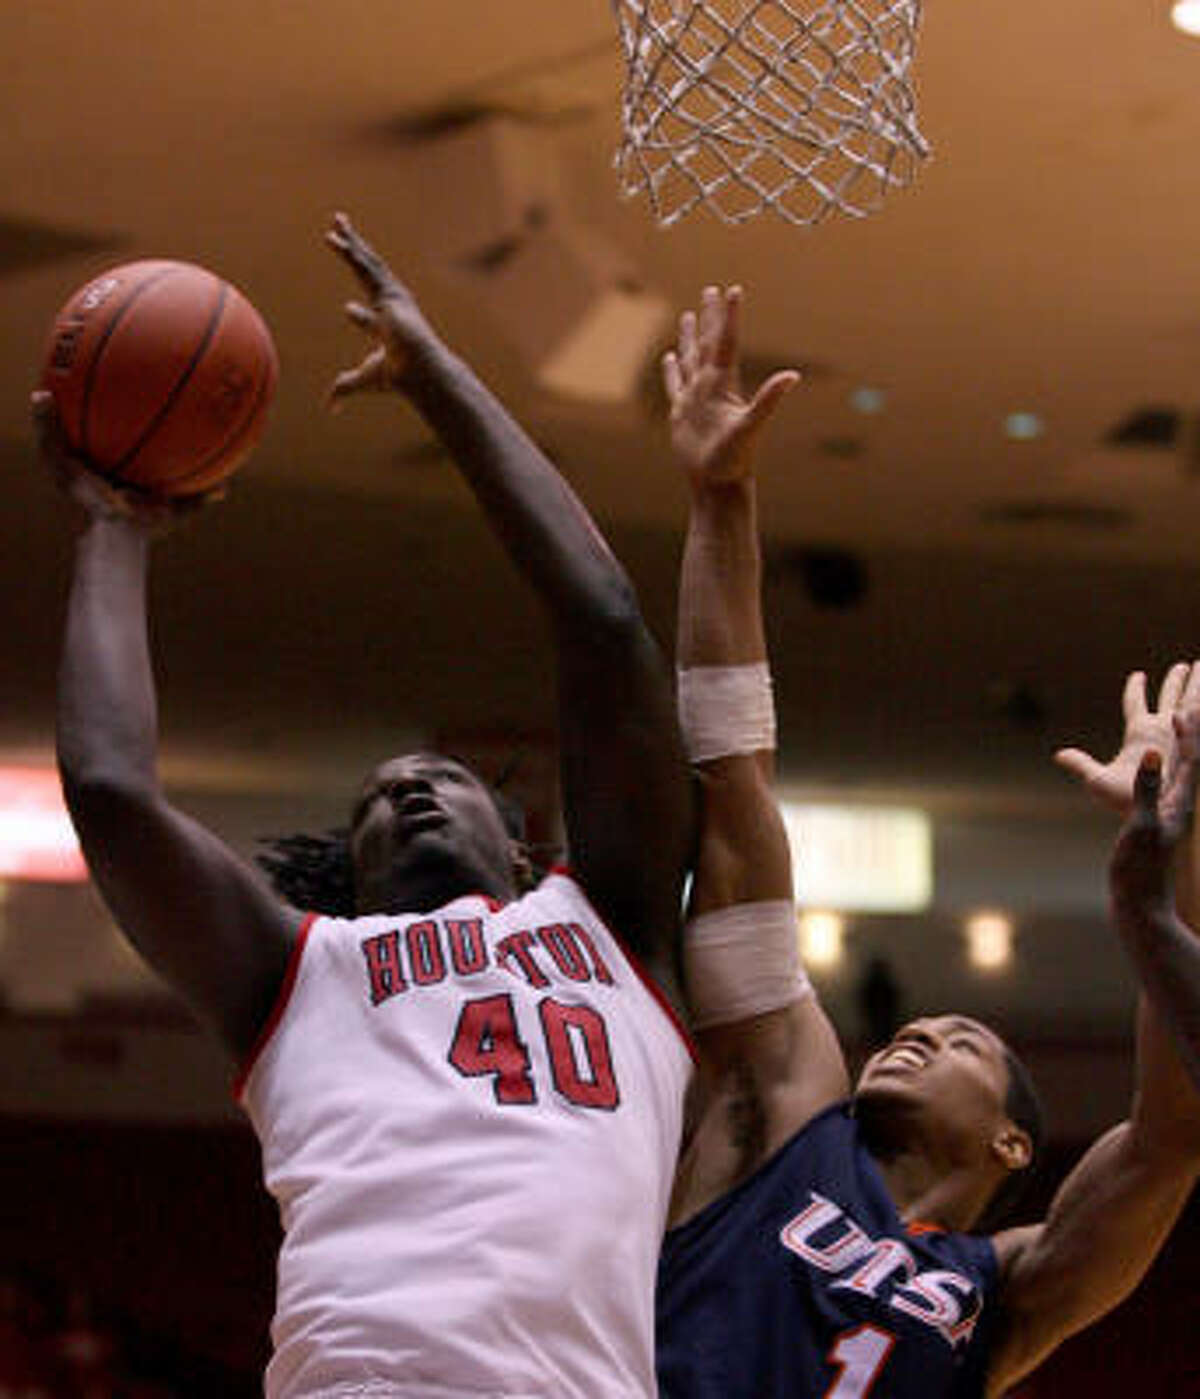 UH forward Kendrick Washington (40) is fouled by UTSA's Stephen Franklin. Washington went to the foul line and missed both free throws that would have tied the game in the last minute.